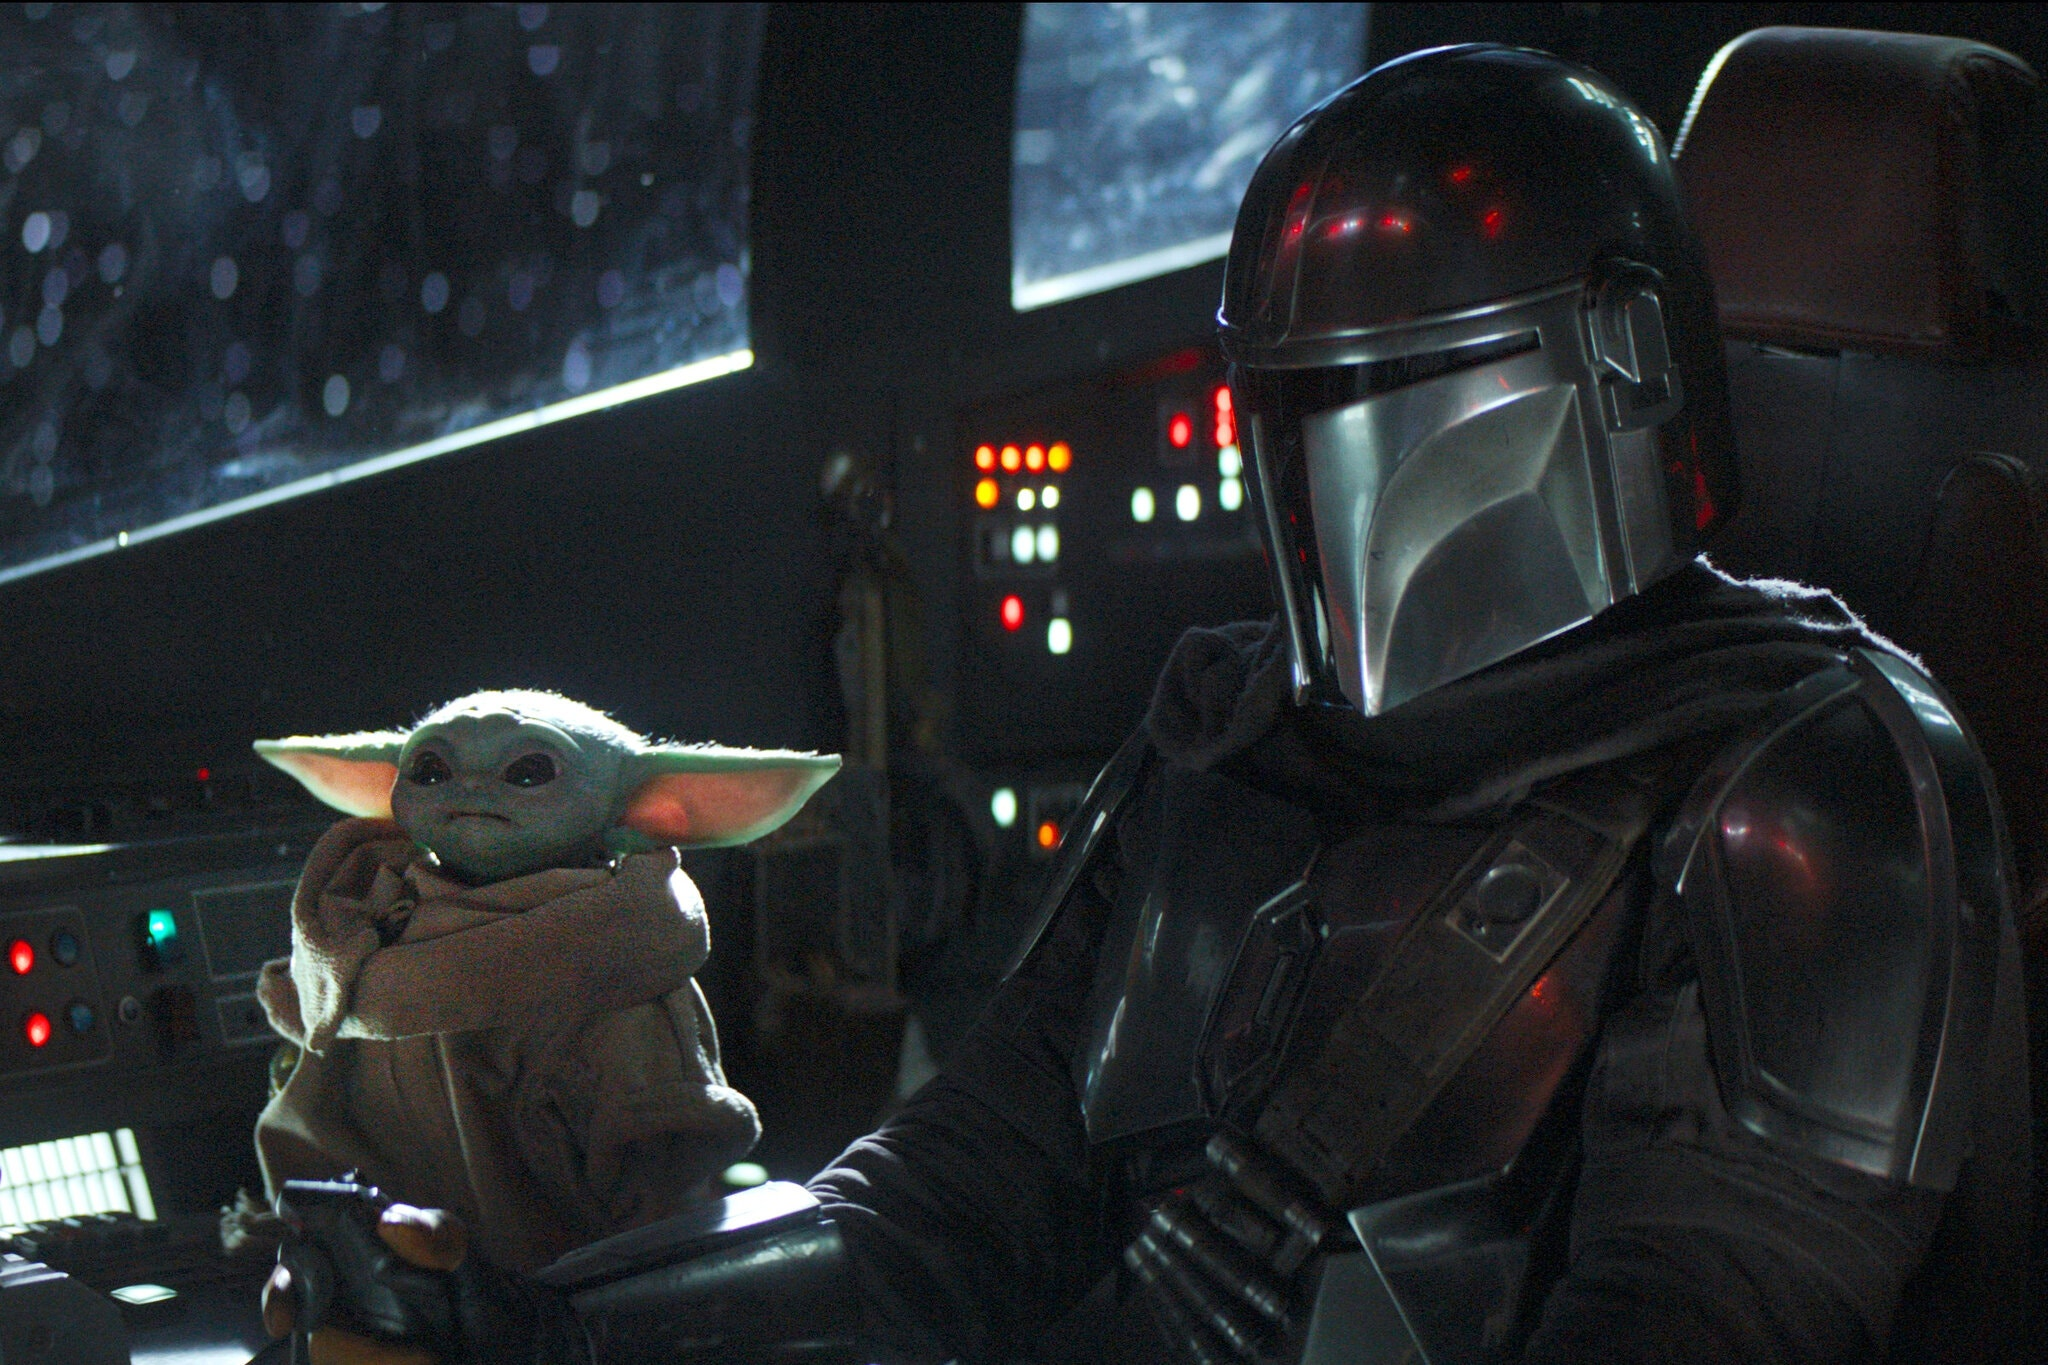 A scene from The Mandalorian on Disney